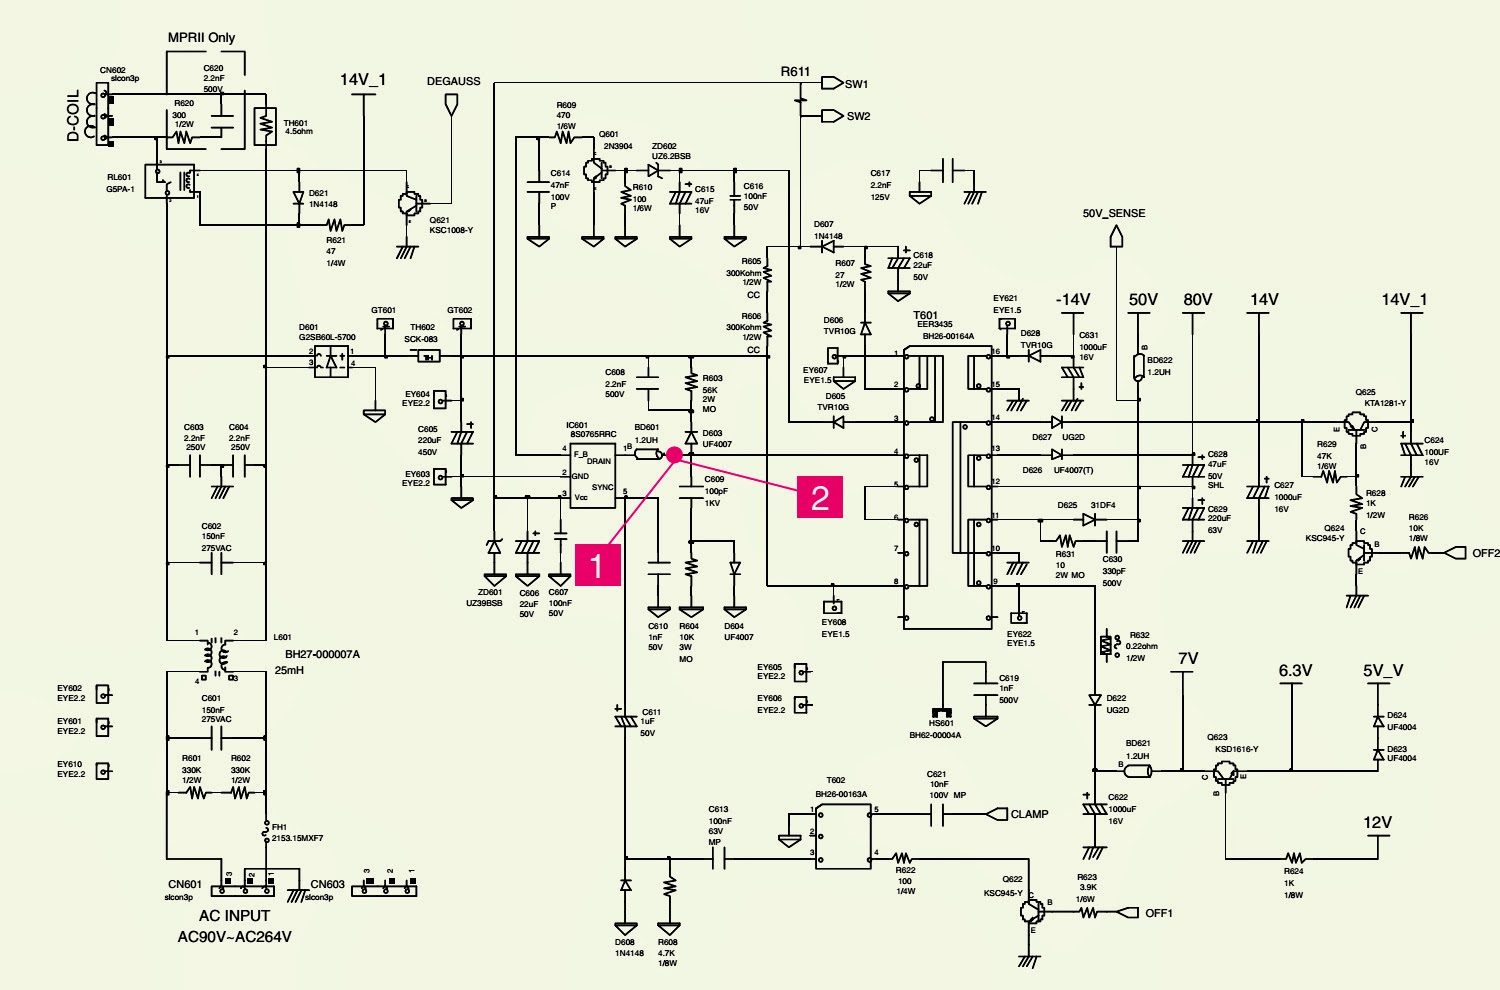 Samsung Led Monitor Circuit Diagram Wiring Bibliotheca Lcd Watch Powersupplycircuit Le17 Color Smps Power Supply Schematic Recorder